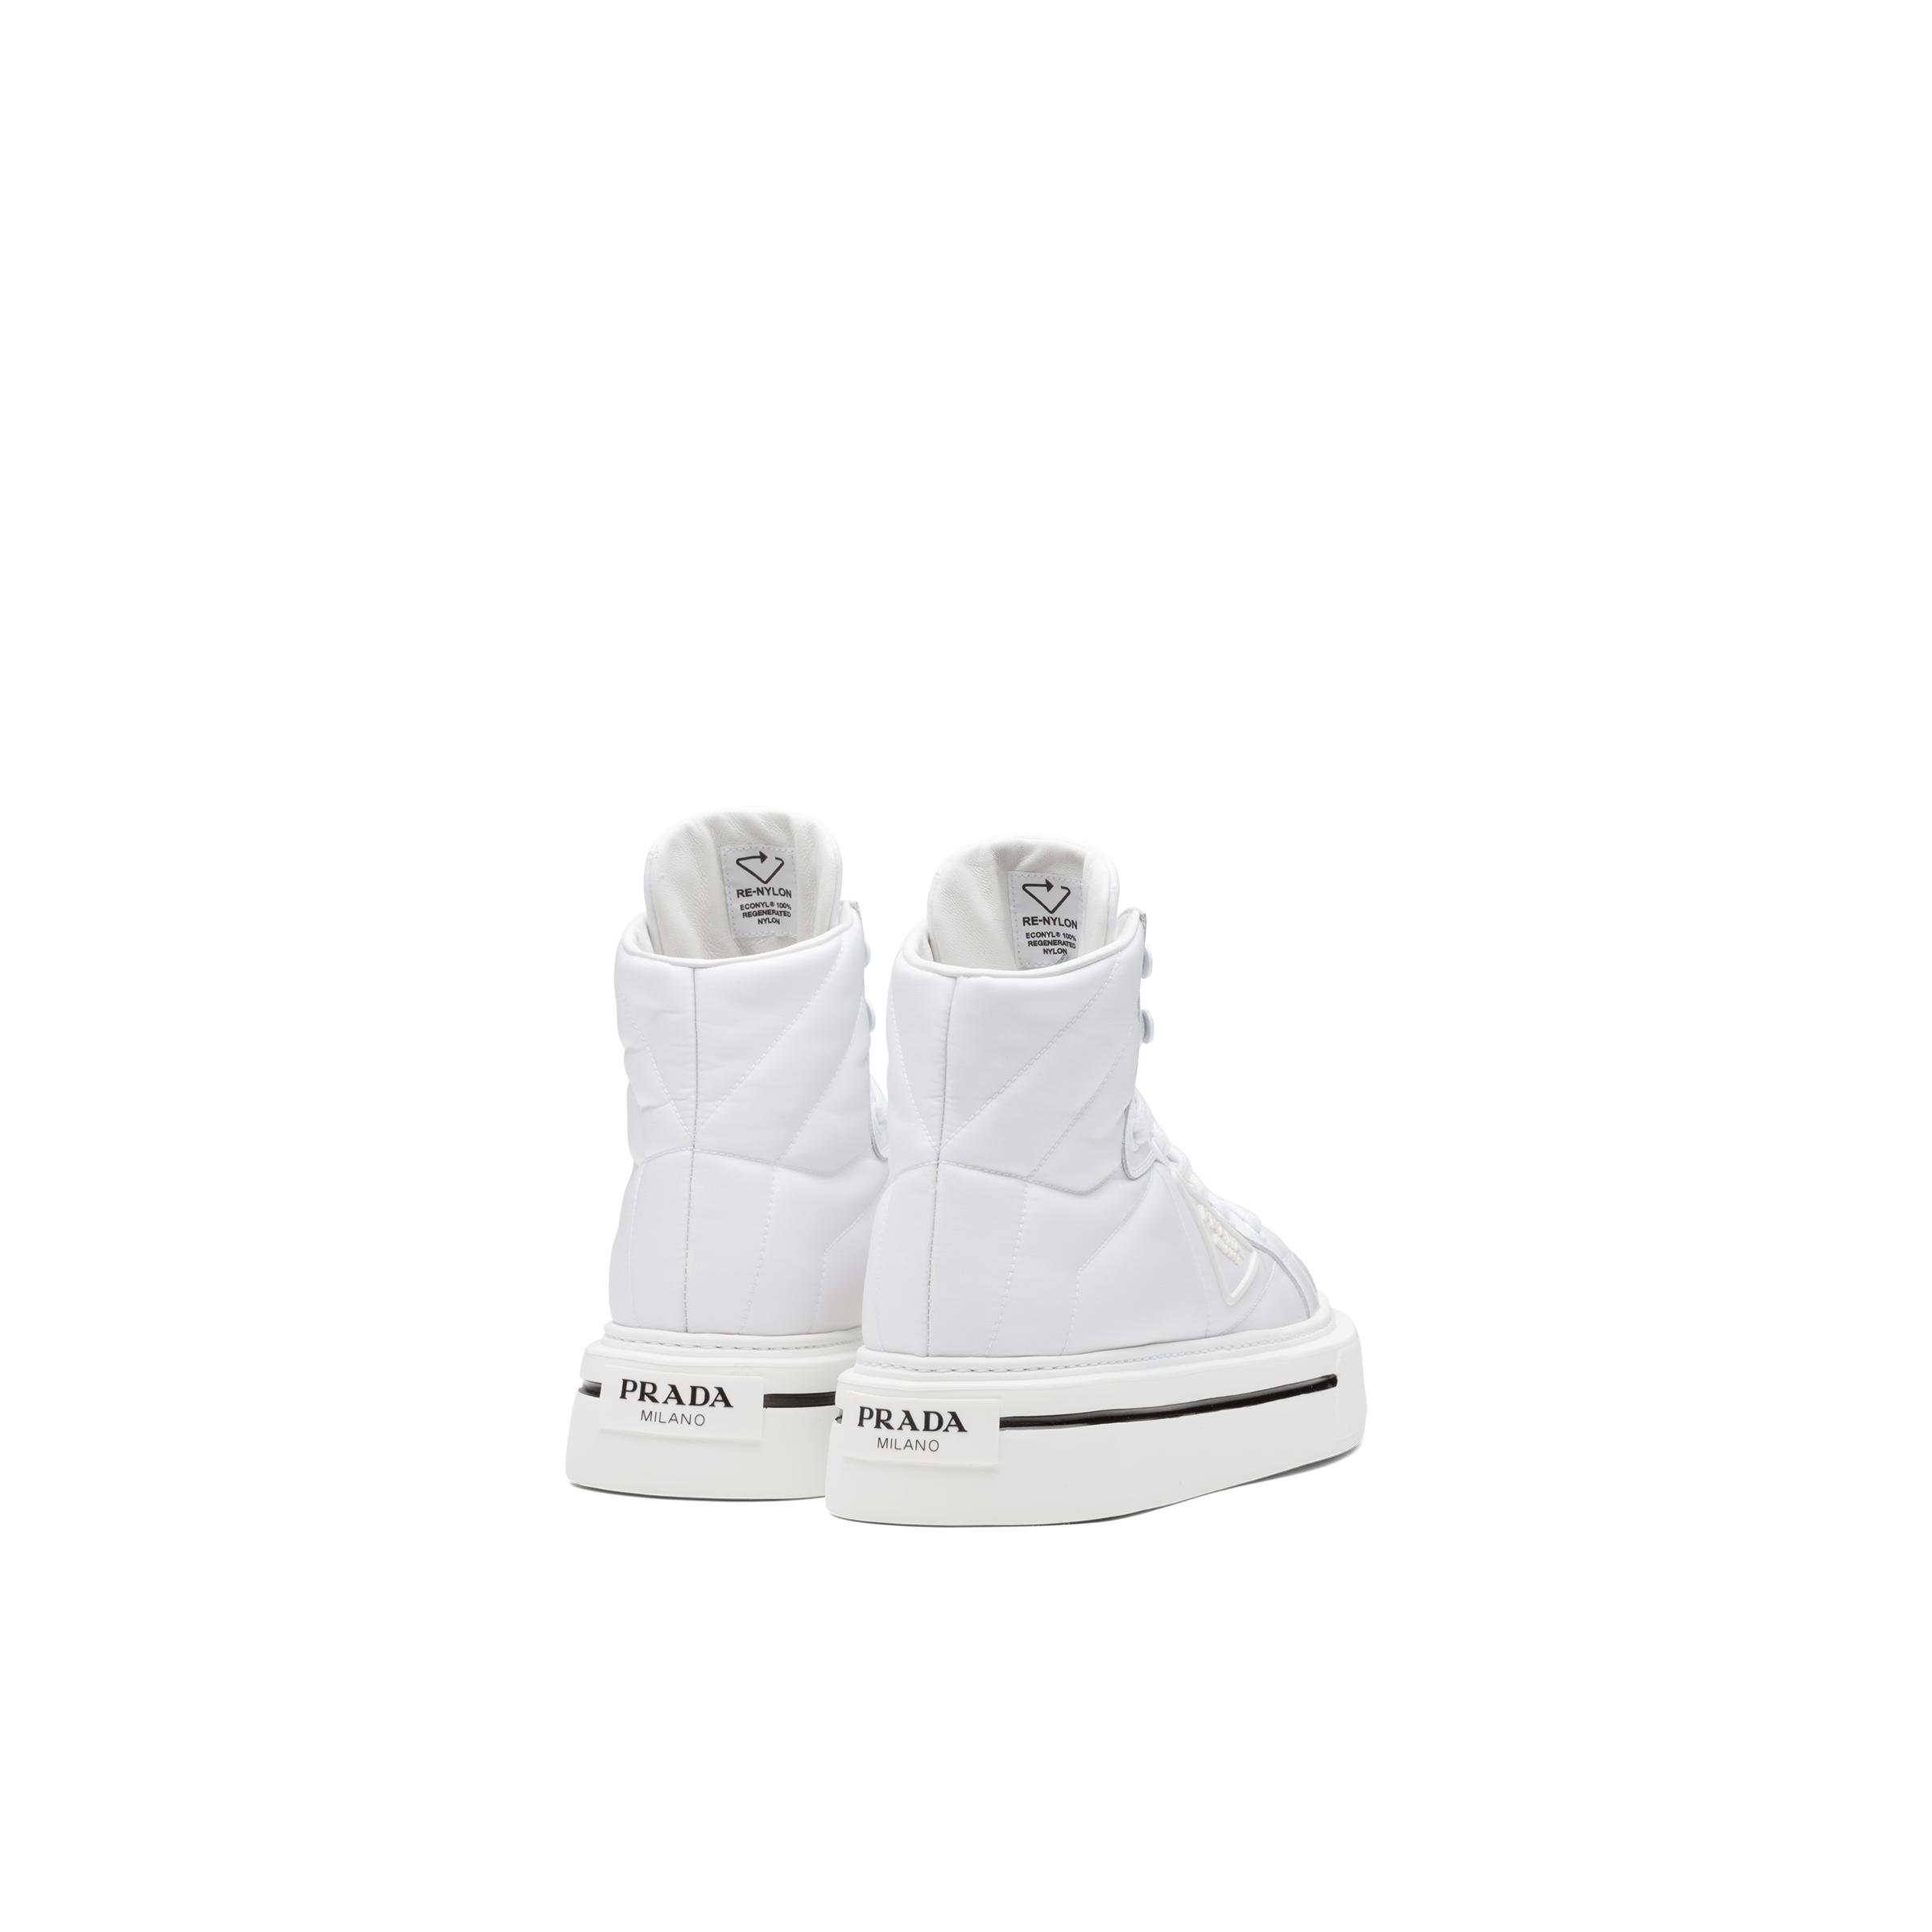 Macro Re-nylon And Brushed Leather High-top Sneakers Women White 3